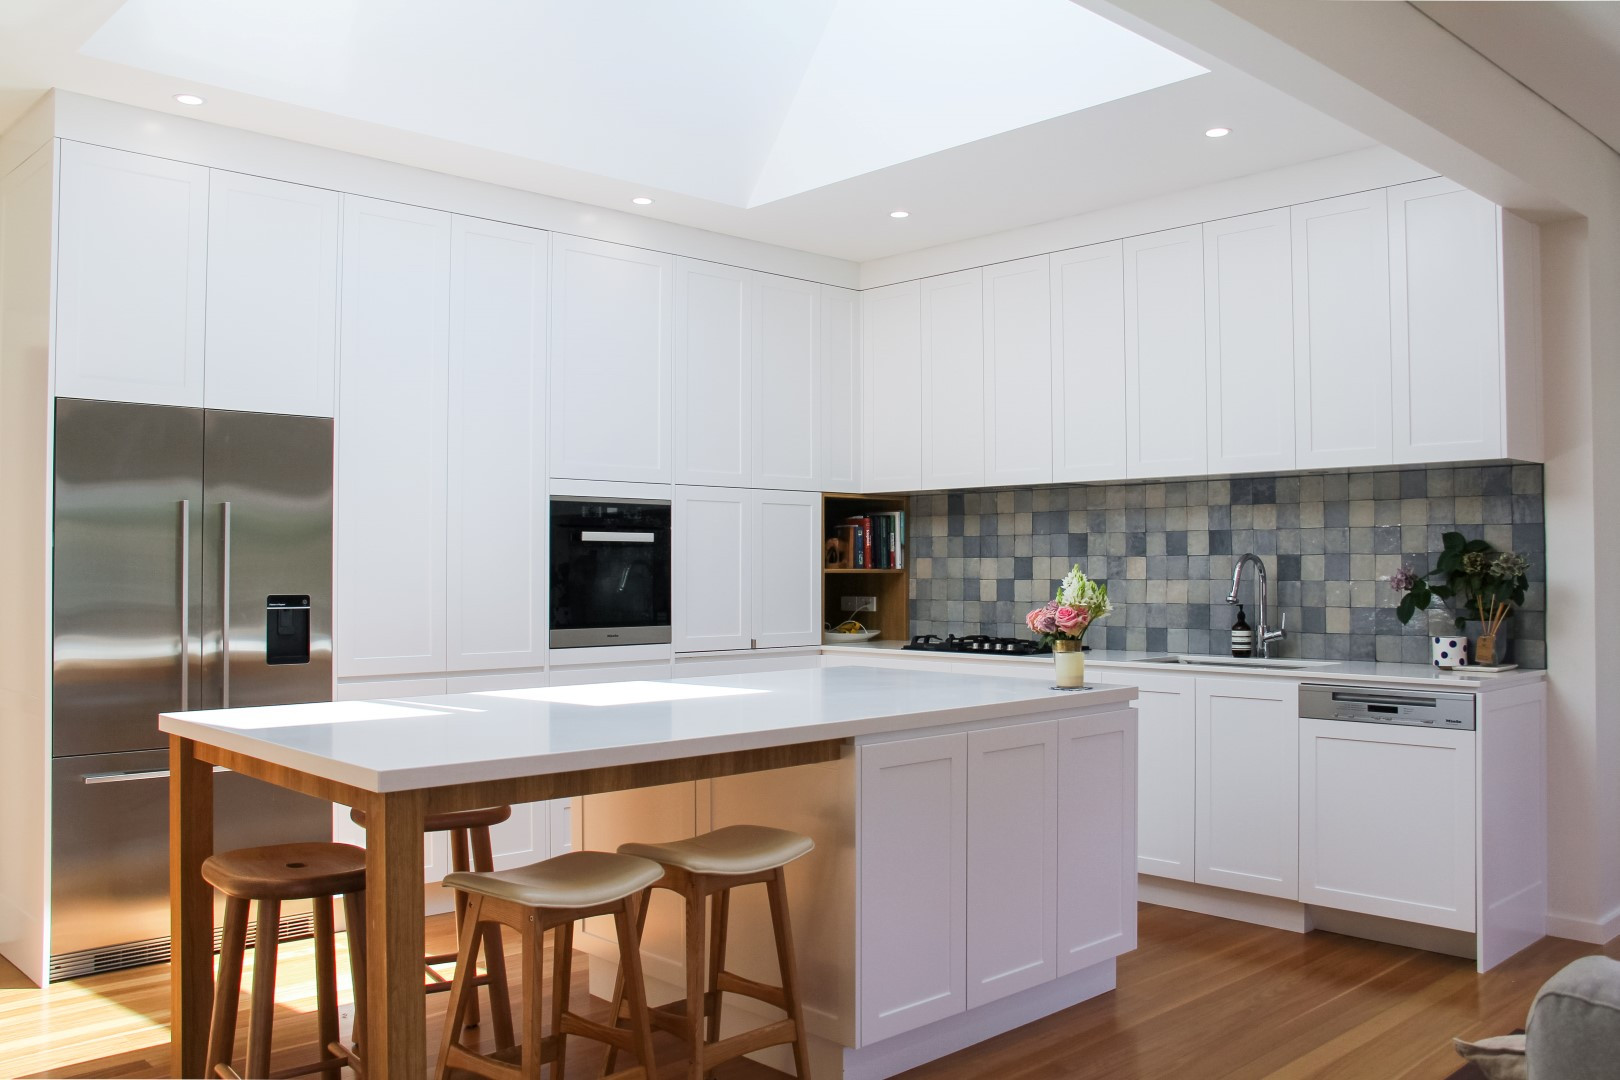 Light filled Como Kitchen - Shire Build renovations in the Sutherland Shire